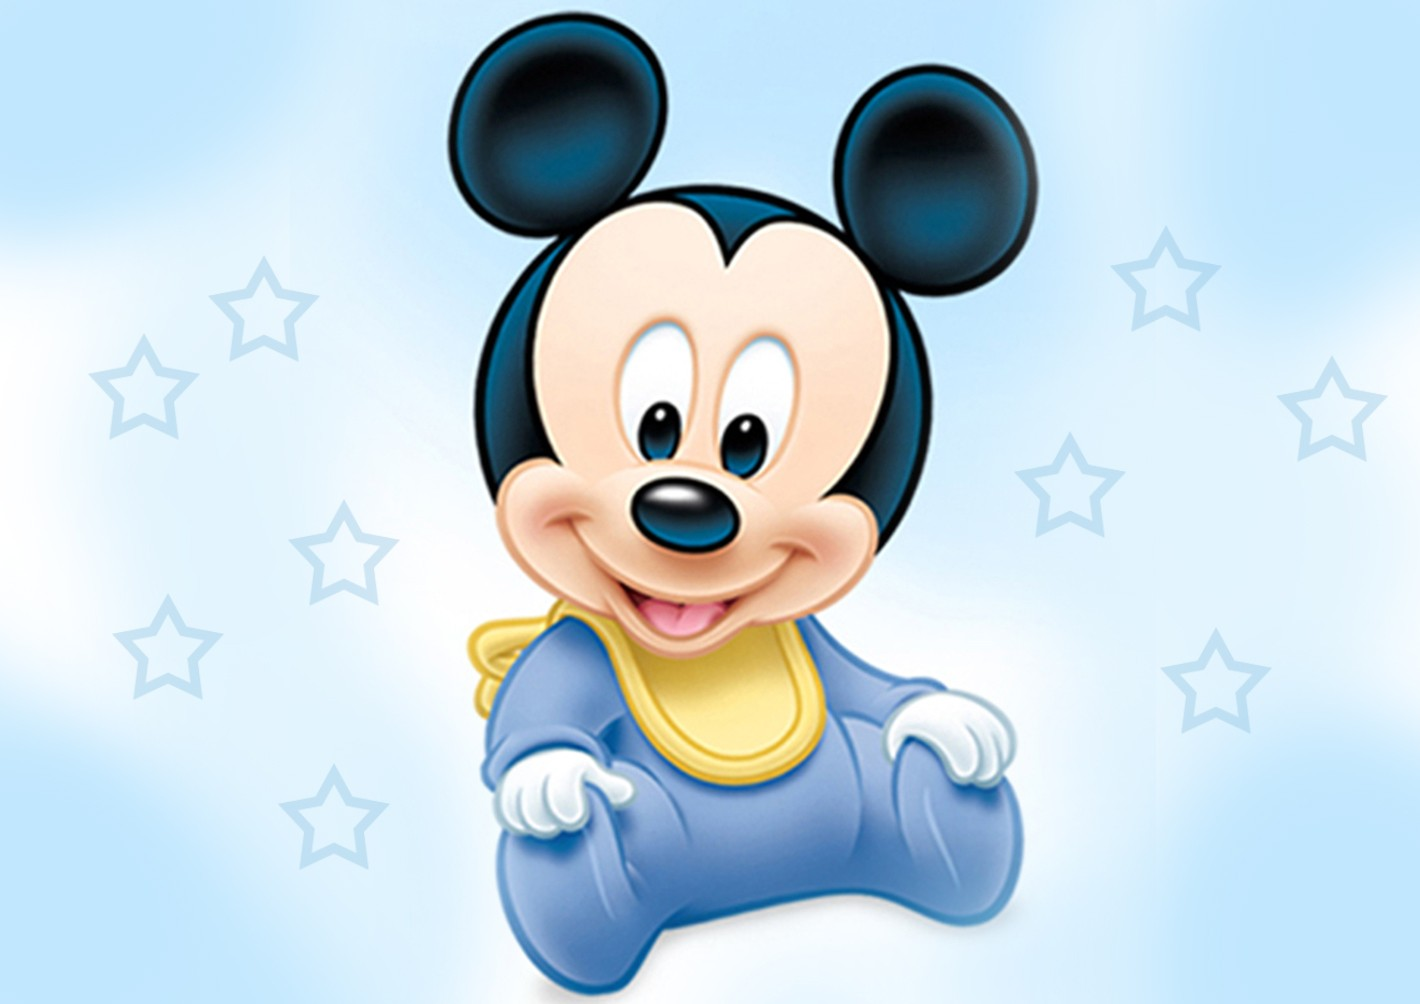 Baby Mickey Mouse Wallpaper - Mickey Mouse Invitations Templates